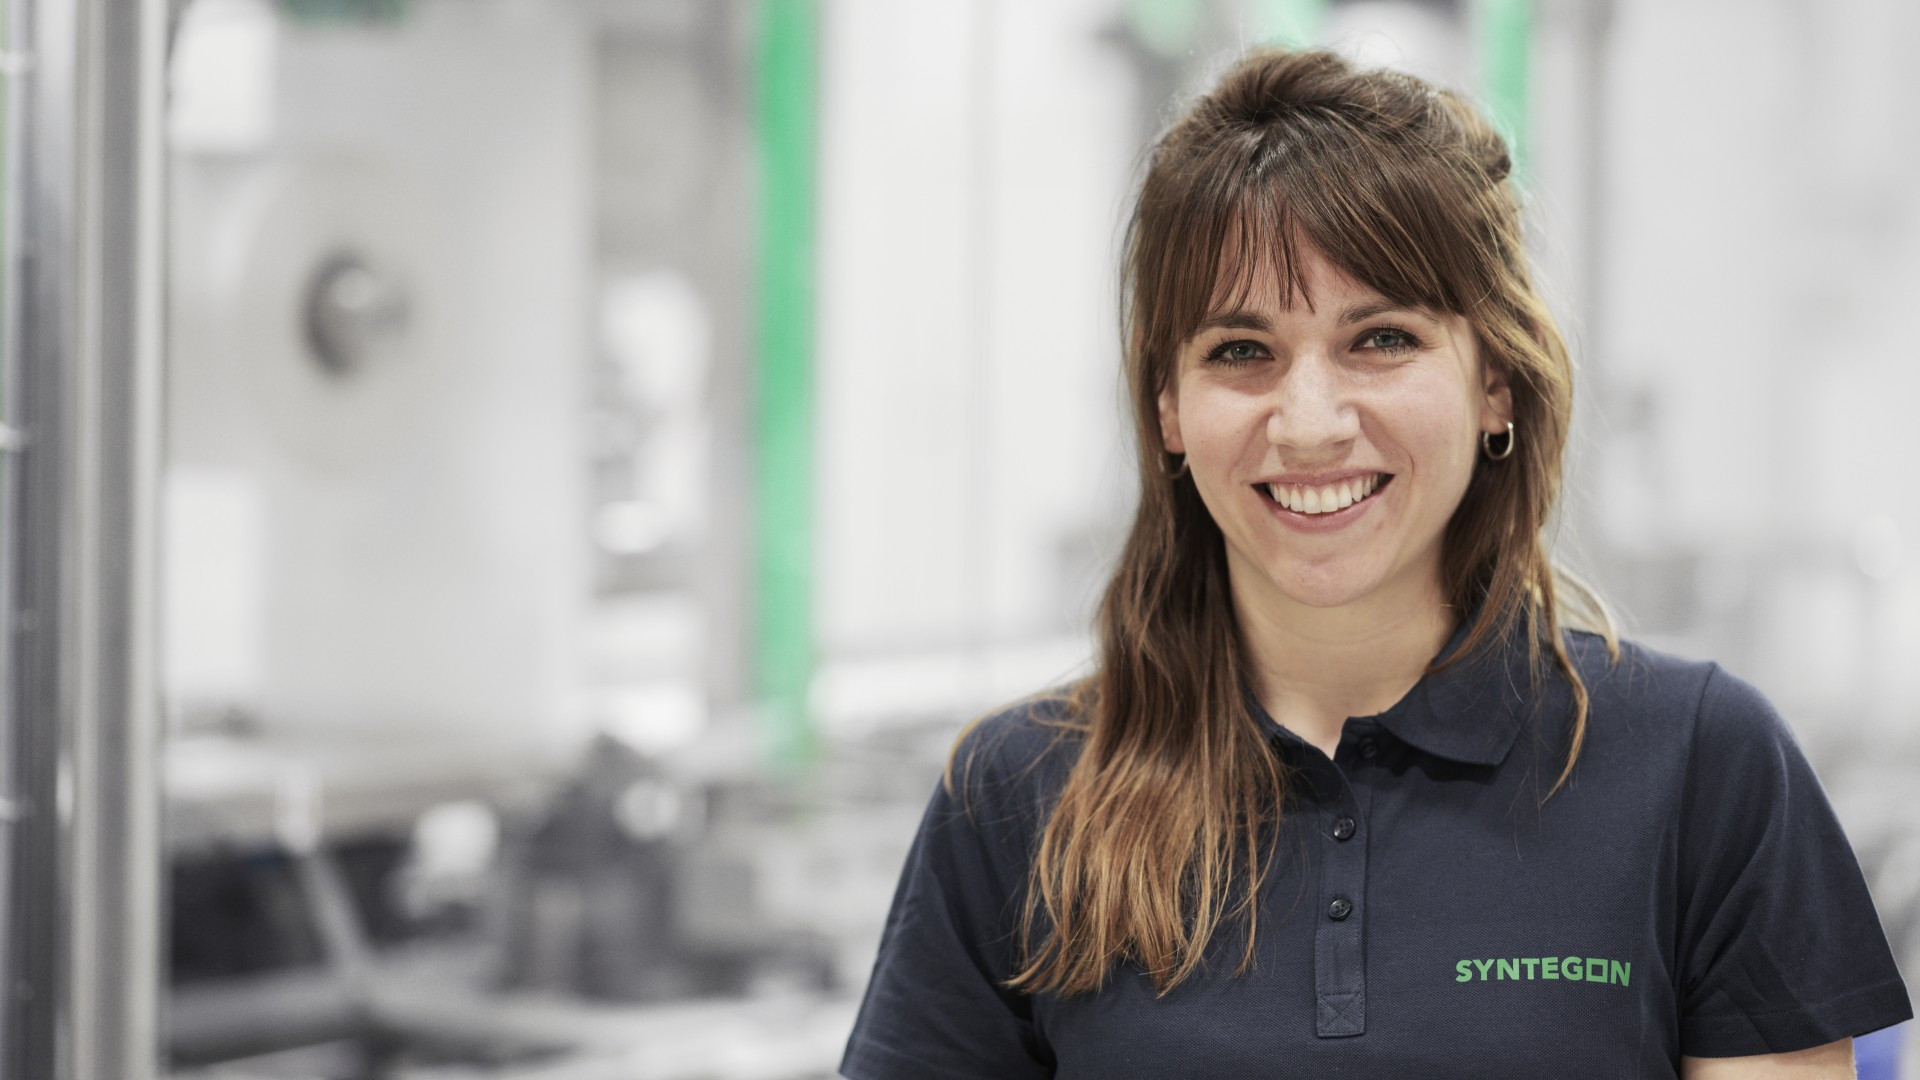 Young Syntegon employee smiling